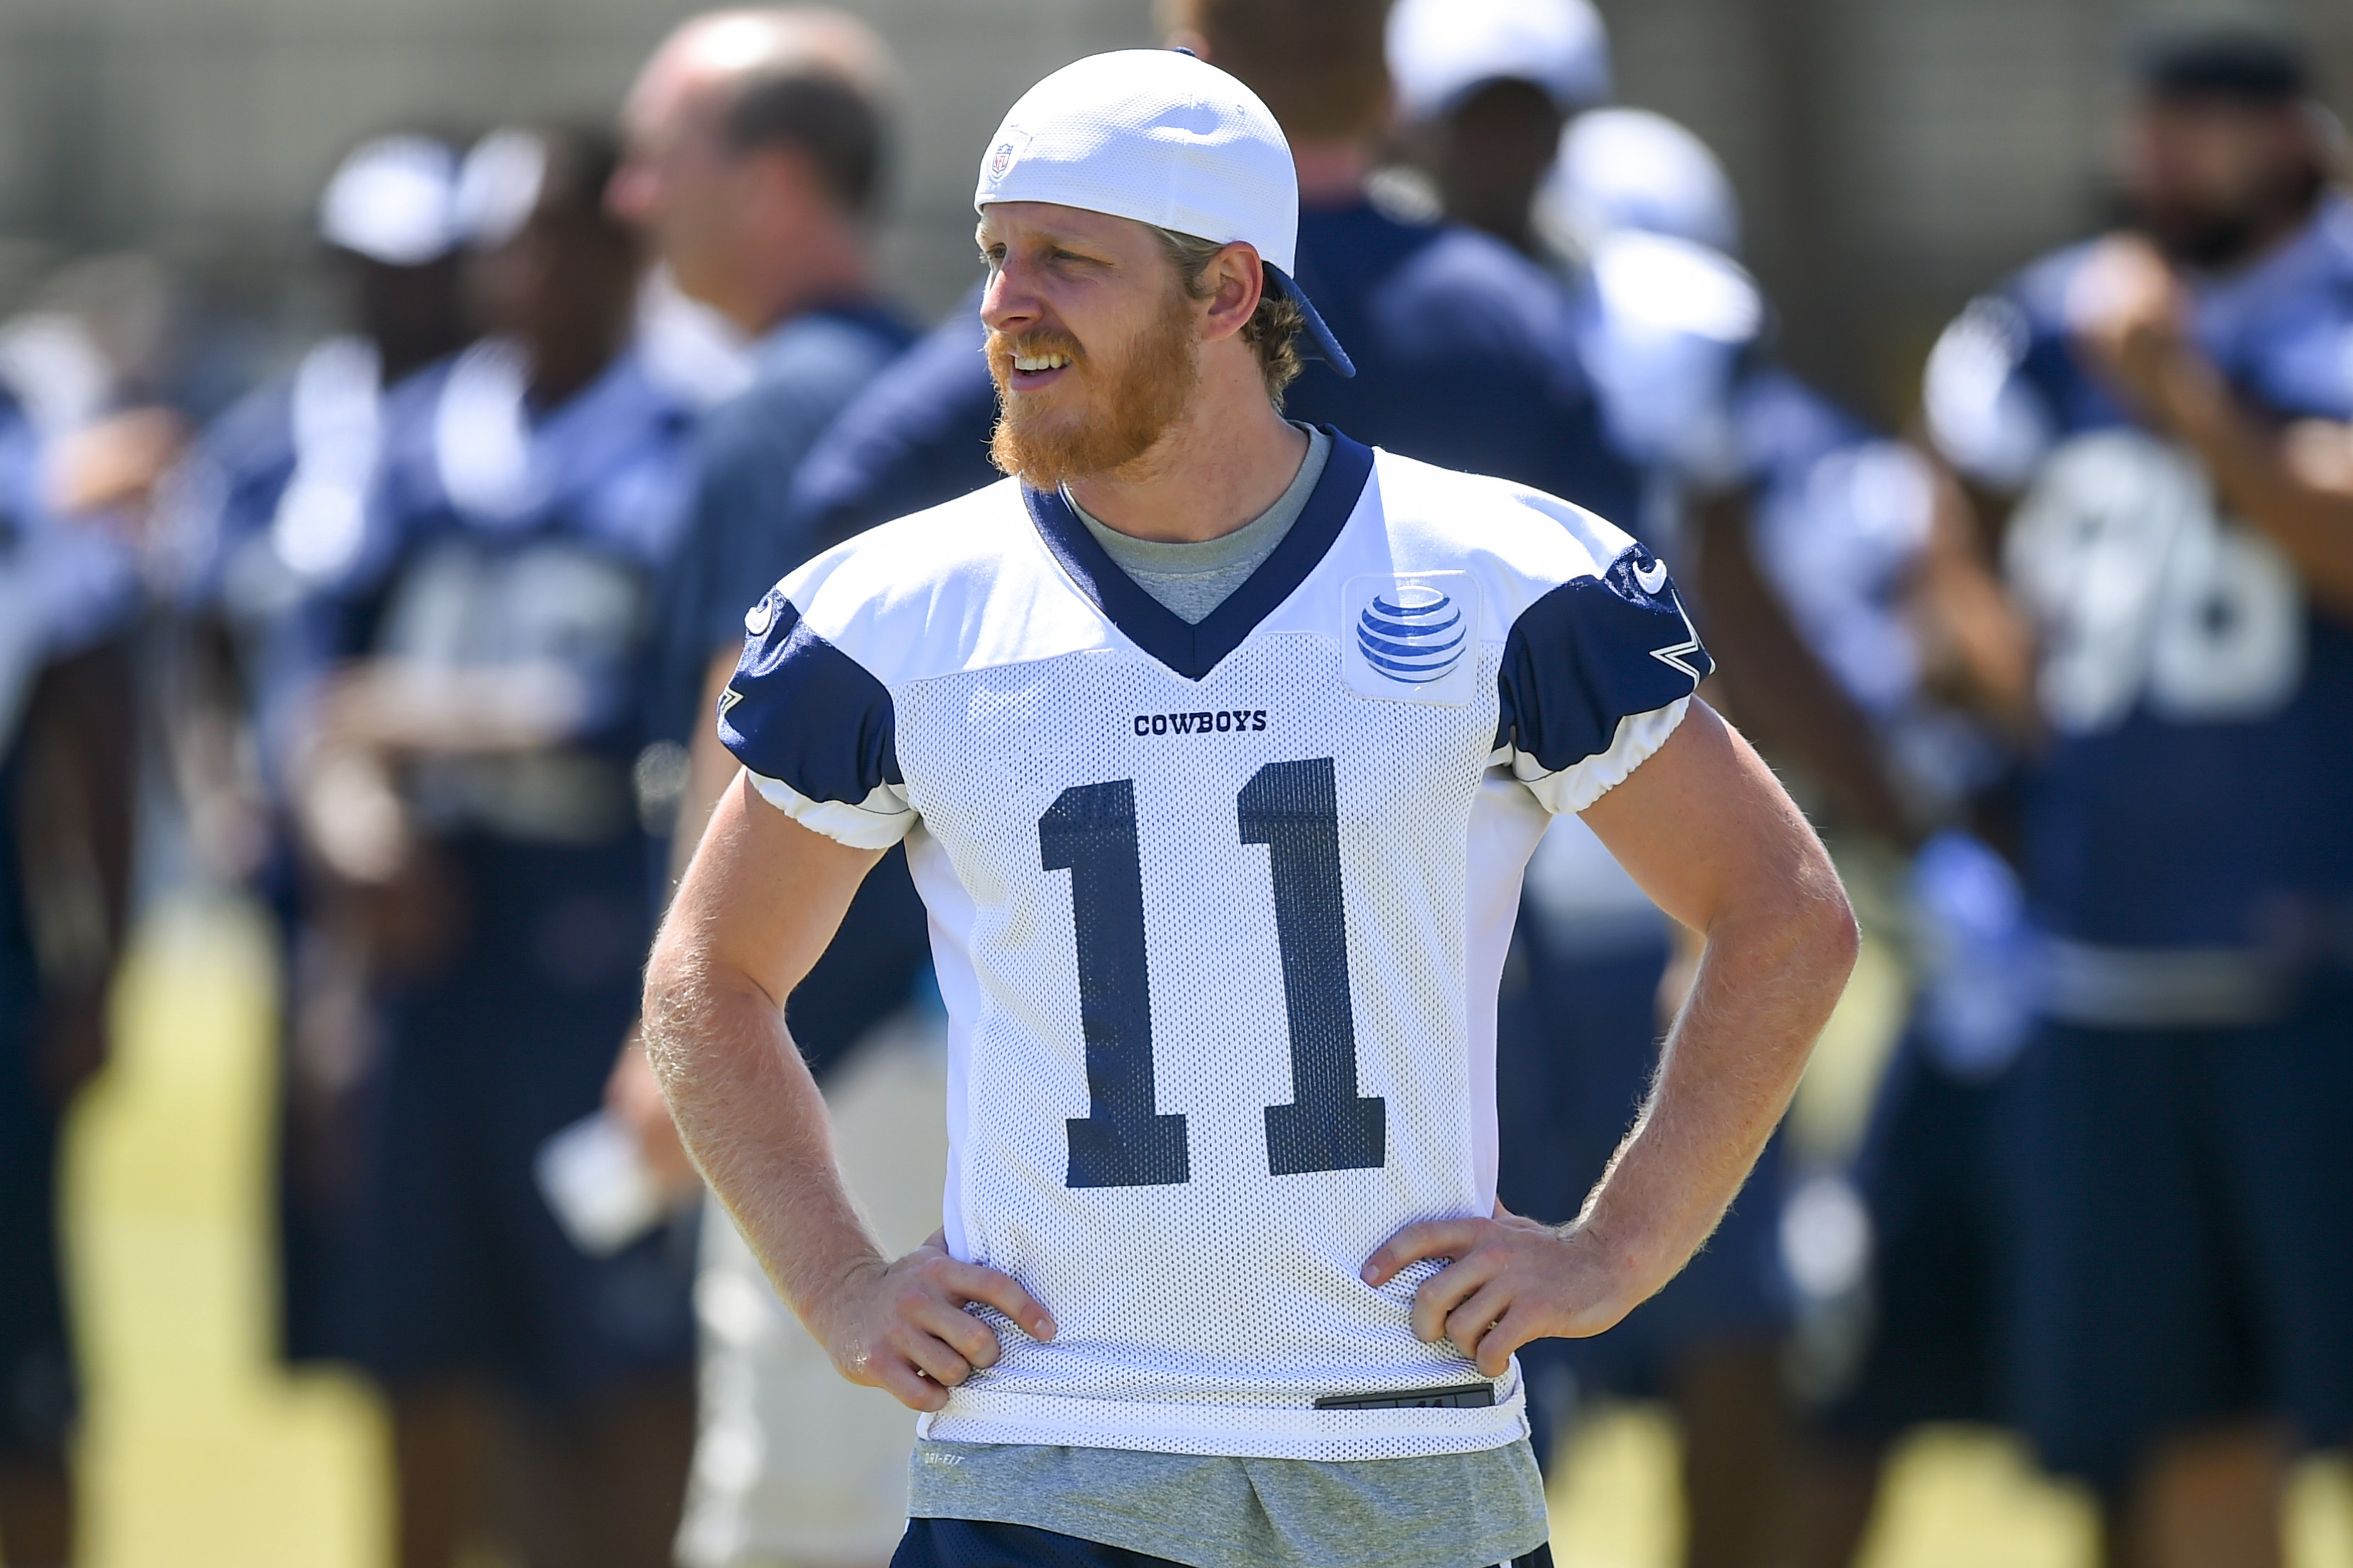 FILE - In this Aug. 4, 2015, file photo, Dallas Cowboys wide receiver Cole Beasley watches other player during NFL football training camp in Oxnard, Calif. Beasley's shifty moves draw loud cheers from fans at Cowboys training camp, and Tony Romo is notici